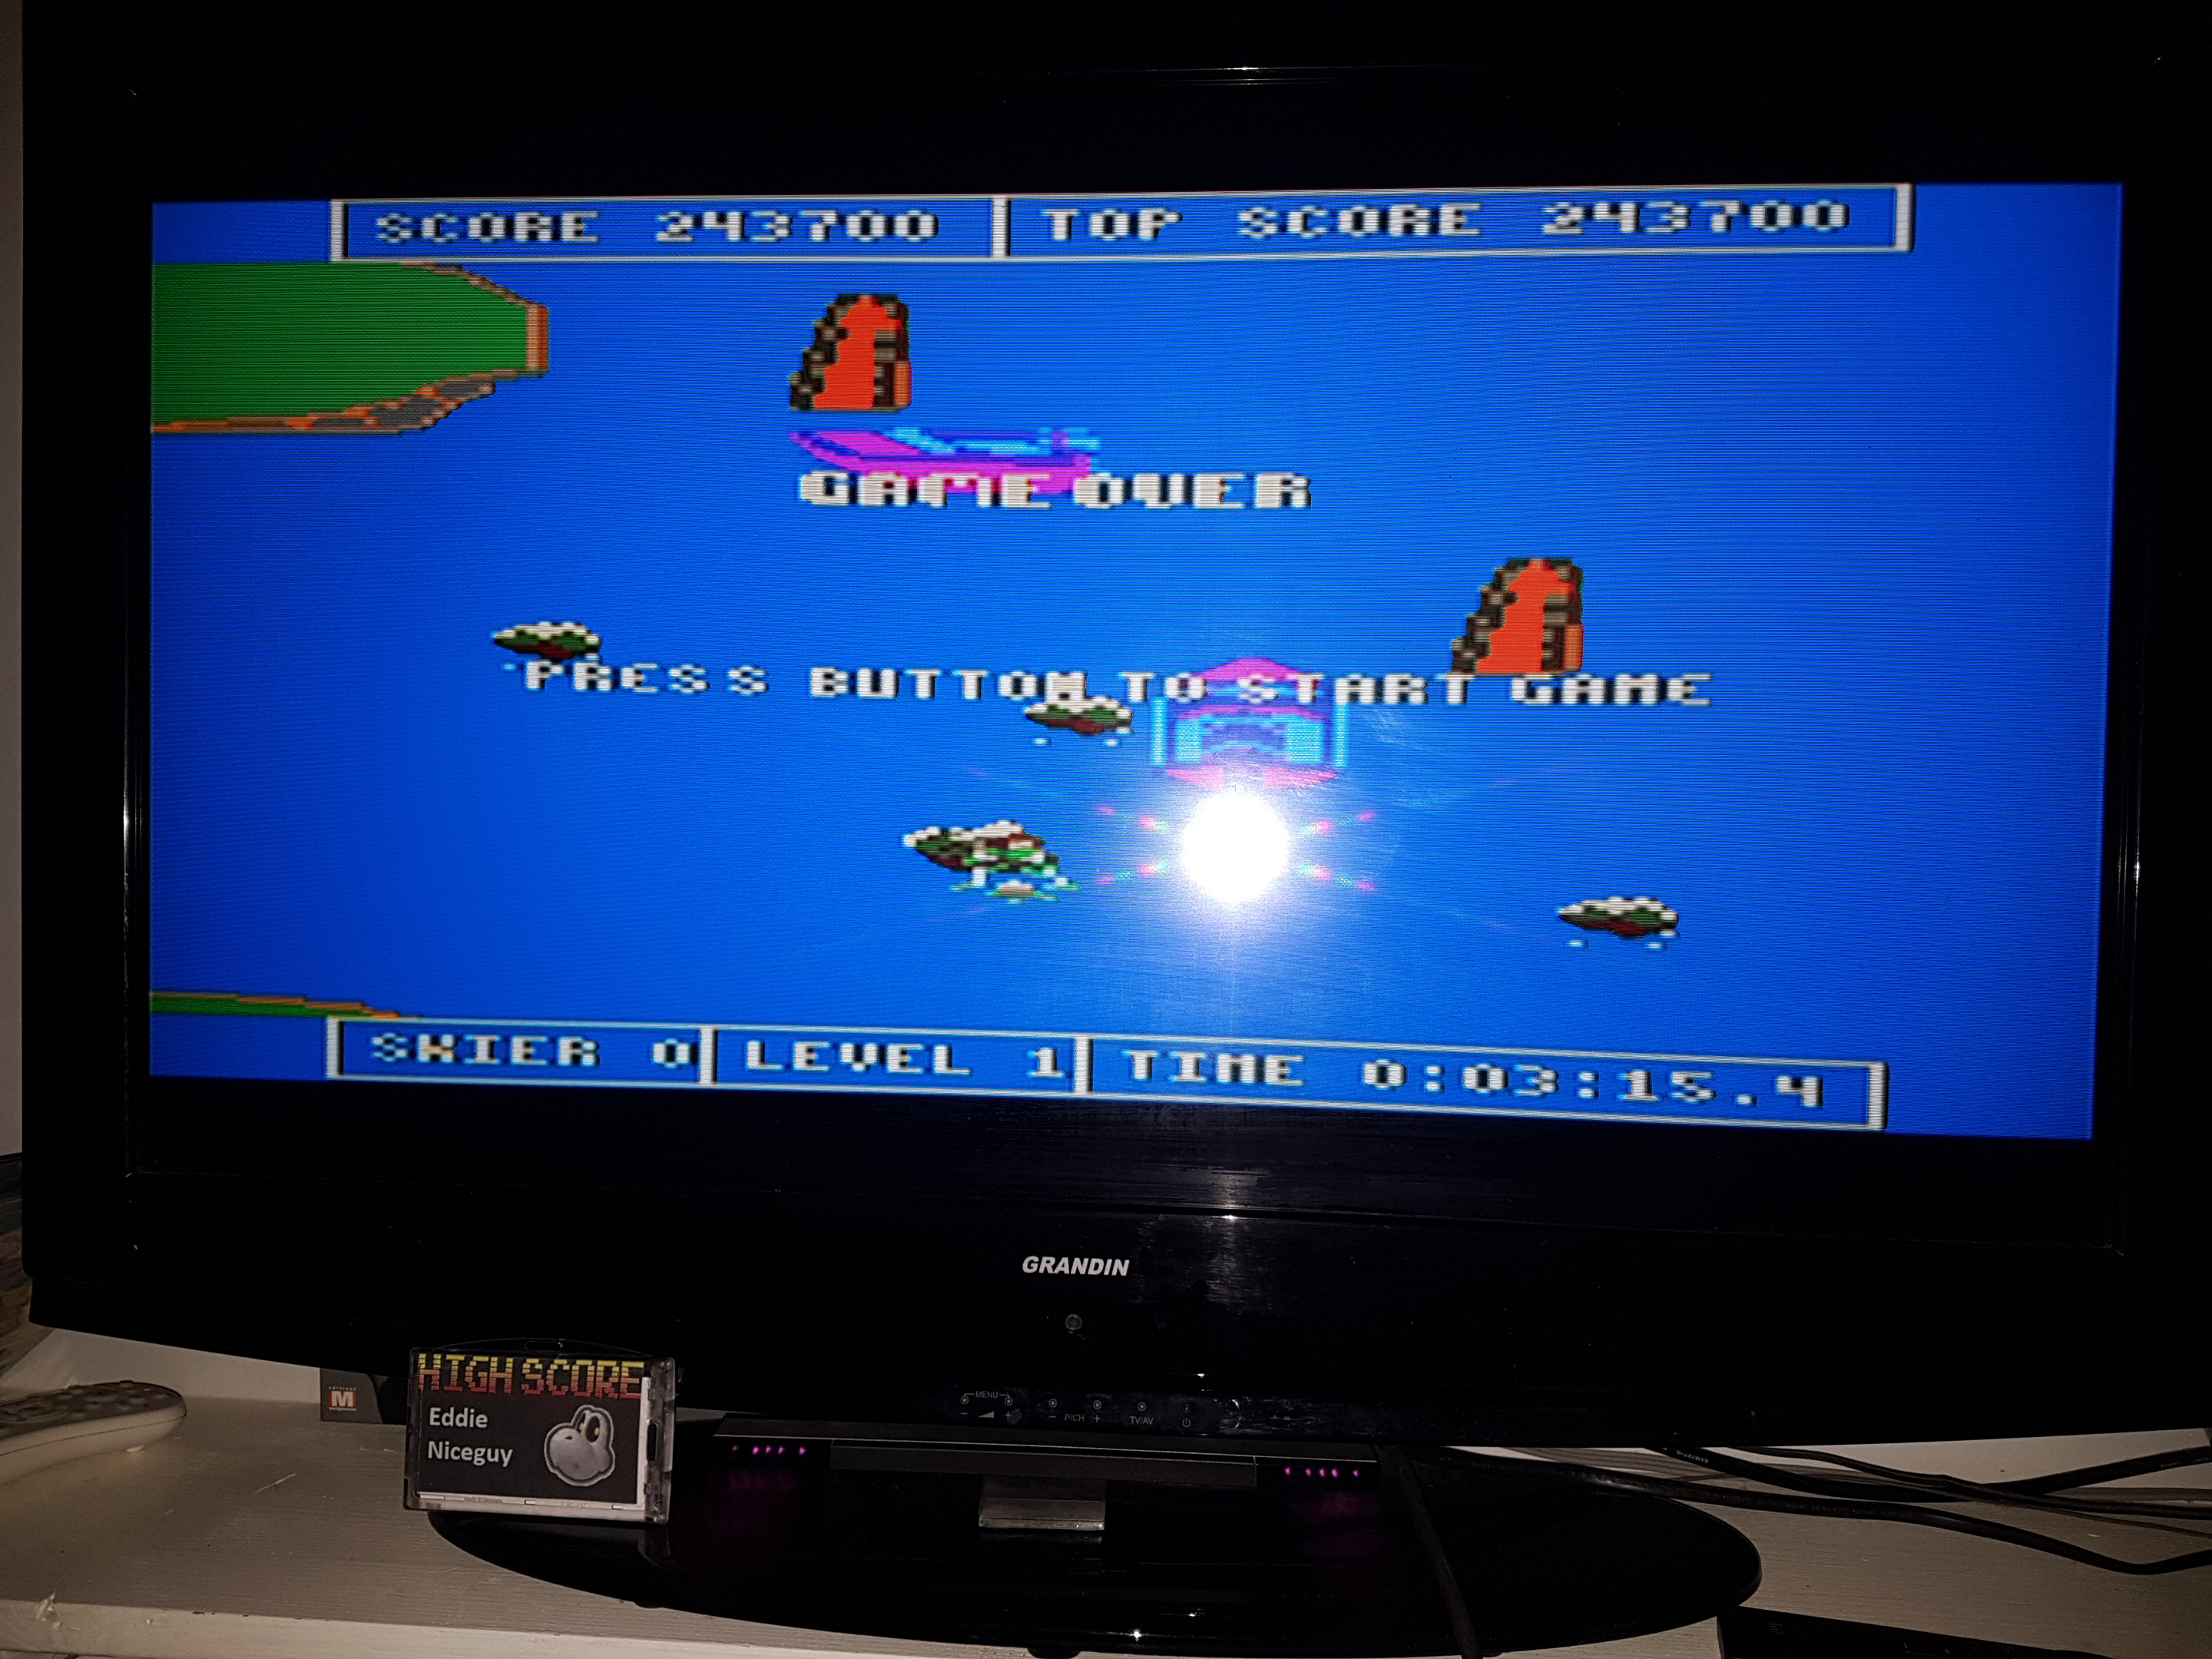 EddieNiceguy: Water Ski (Atari 7800 Emulated) 243,700 points on 2019-03-29 18:30:45